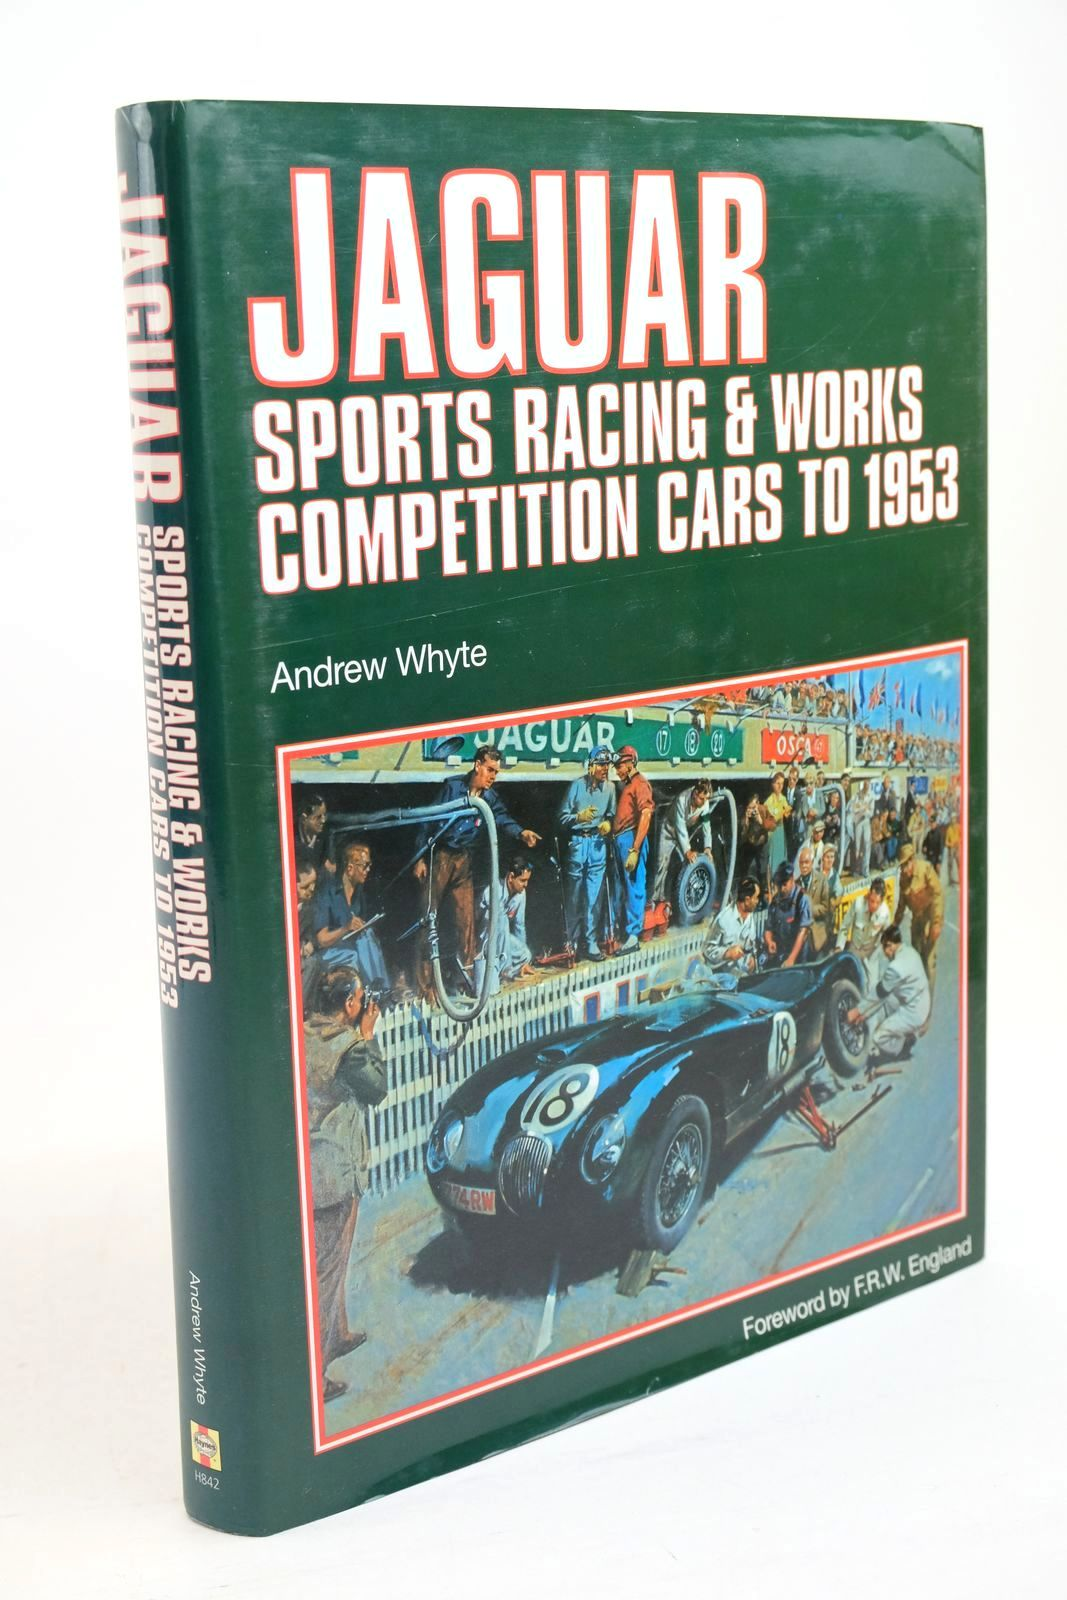 Photo of JAGUAR SPORTS RACING & WORKS COMPETITION CARS TO 1953 written by Whyte, Andrew published by Haynes Publishing (STOCK CODE: 1321253)  for sale by Stella & Rose's Books